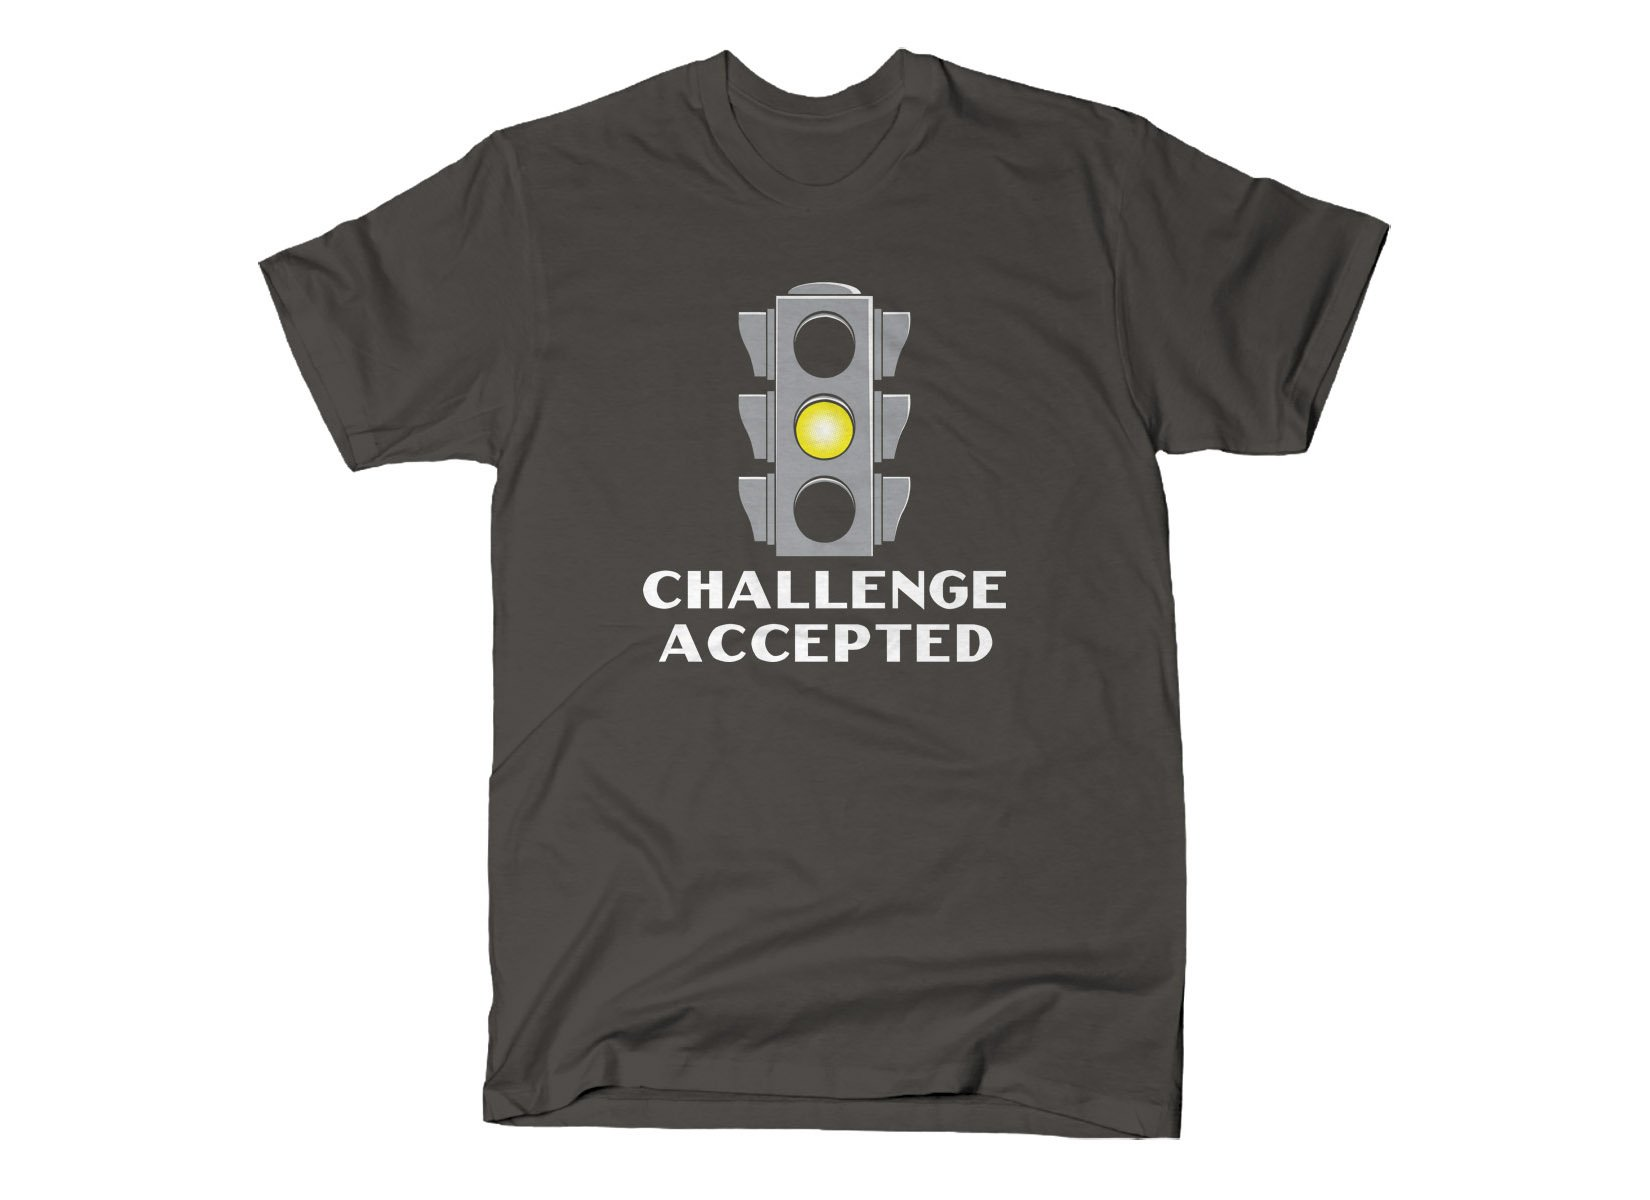 Challenge Accepted Stoplight on Mens T-Shirt